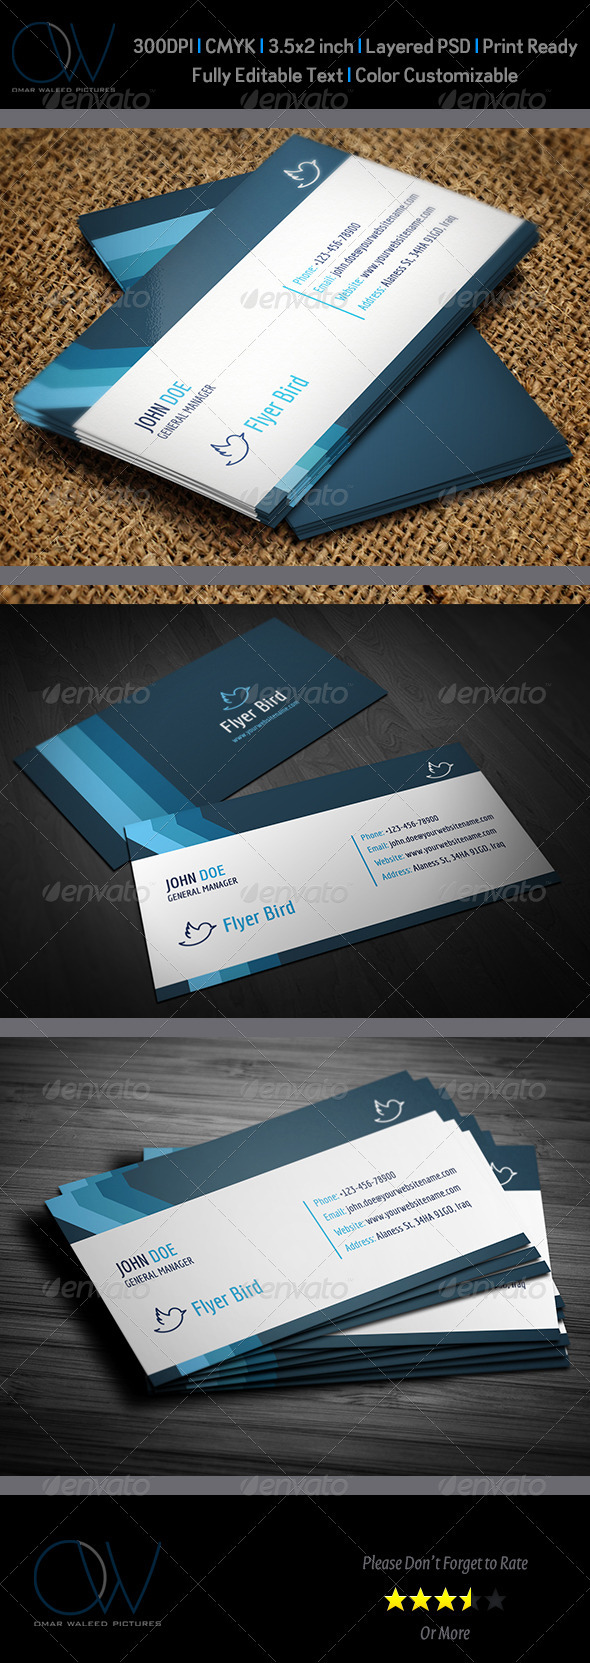 Corporate Business Card Vol.16 - Corporate Business Cards